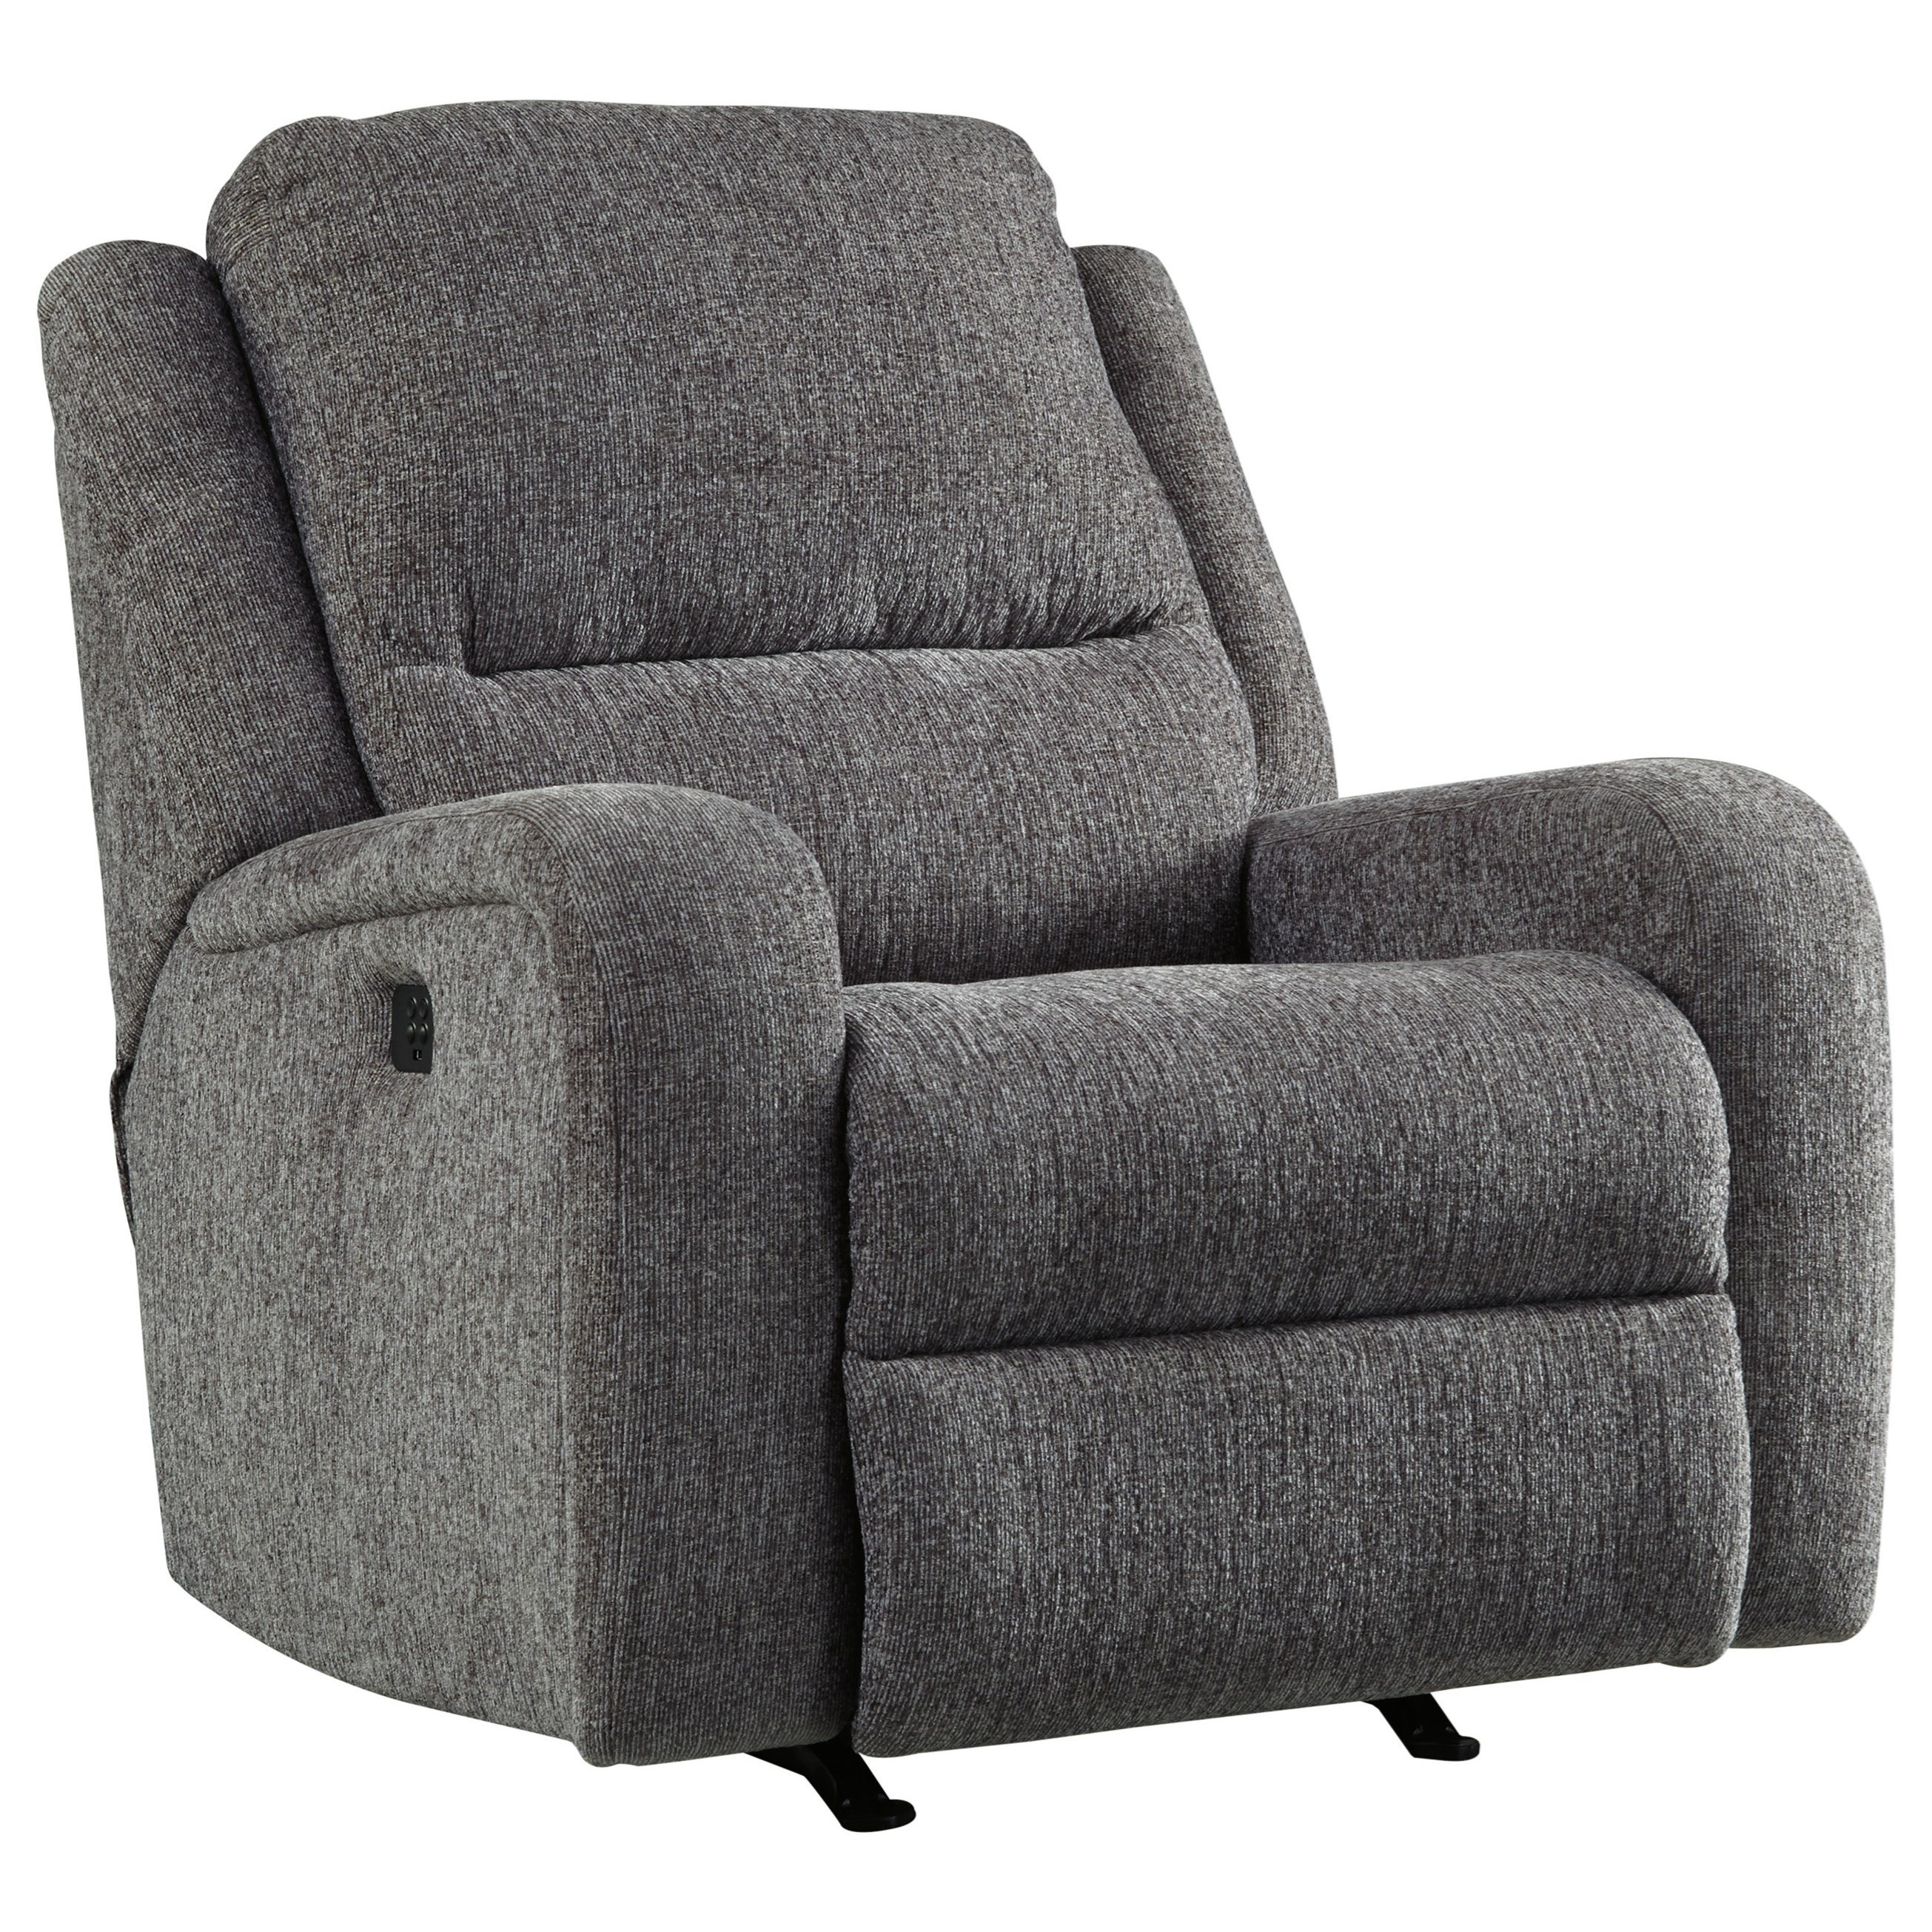 Signature Design by Ashley Krismen Contemporary Power Rocker Recliner w/ Adjustable Headrest ...